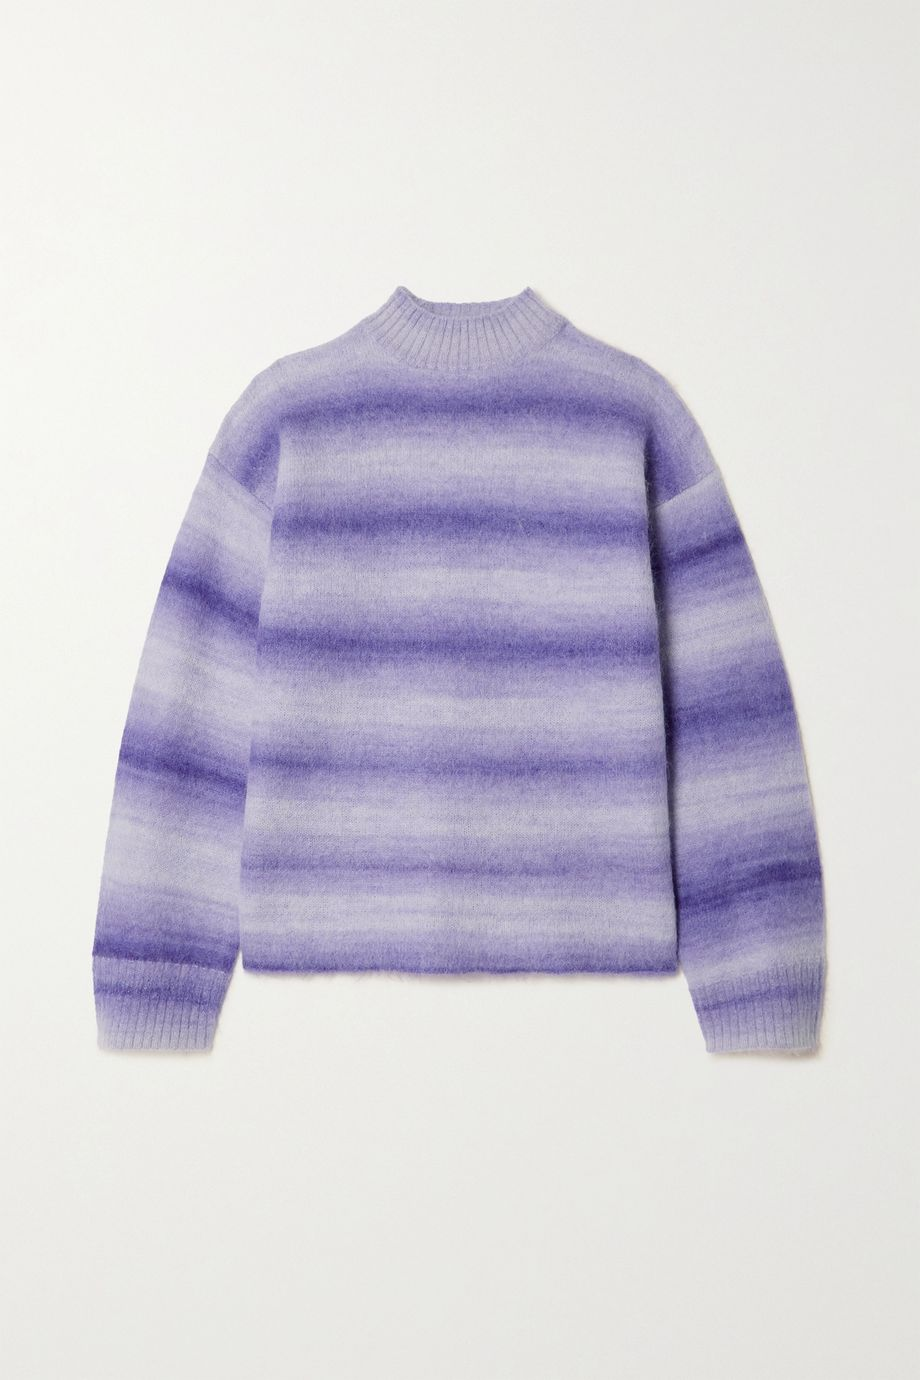 Acne Studios Ombré striped knitted sweater